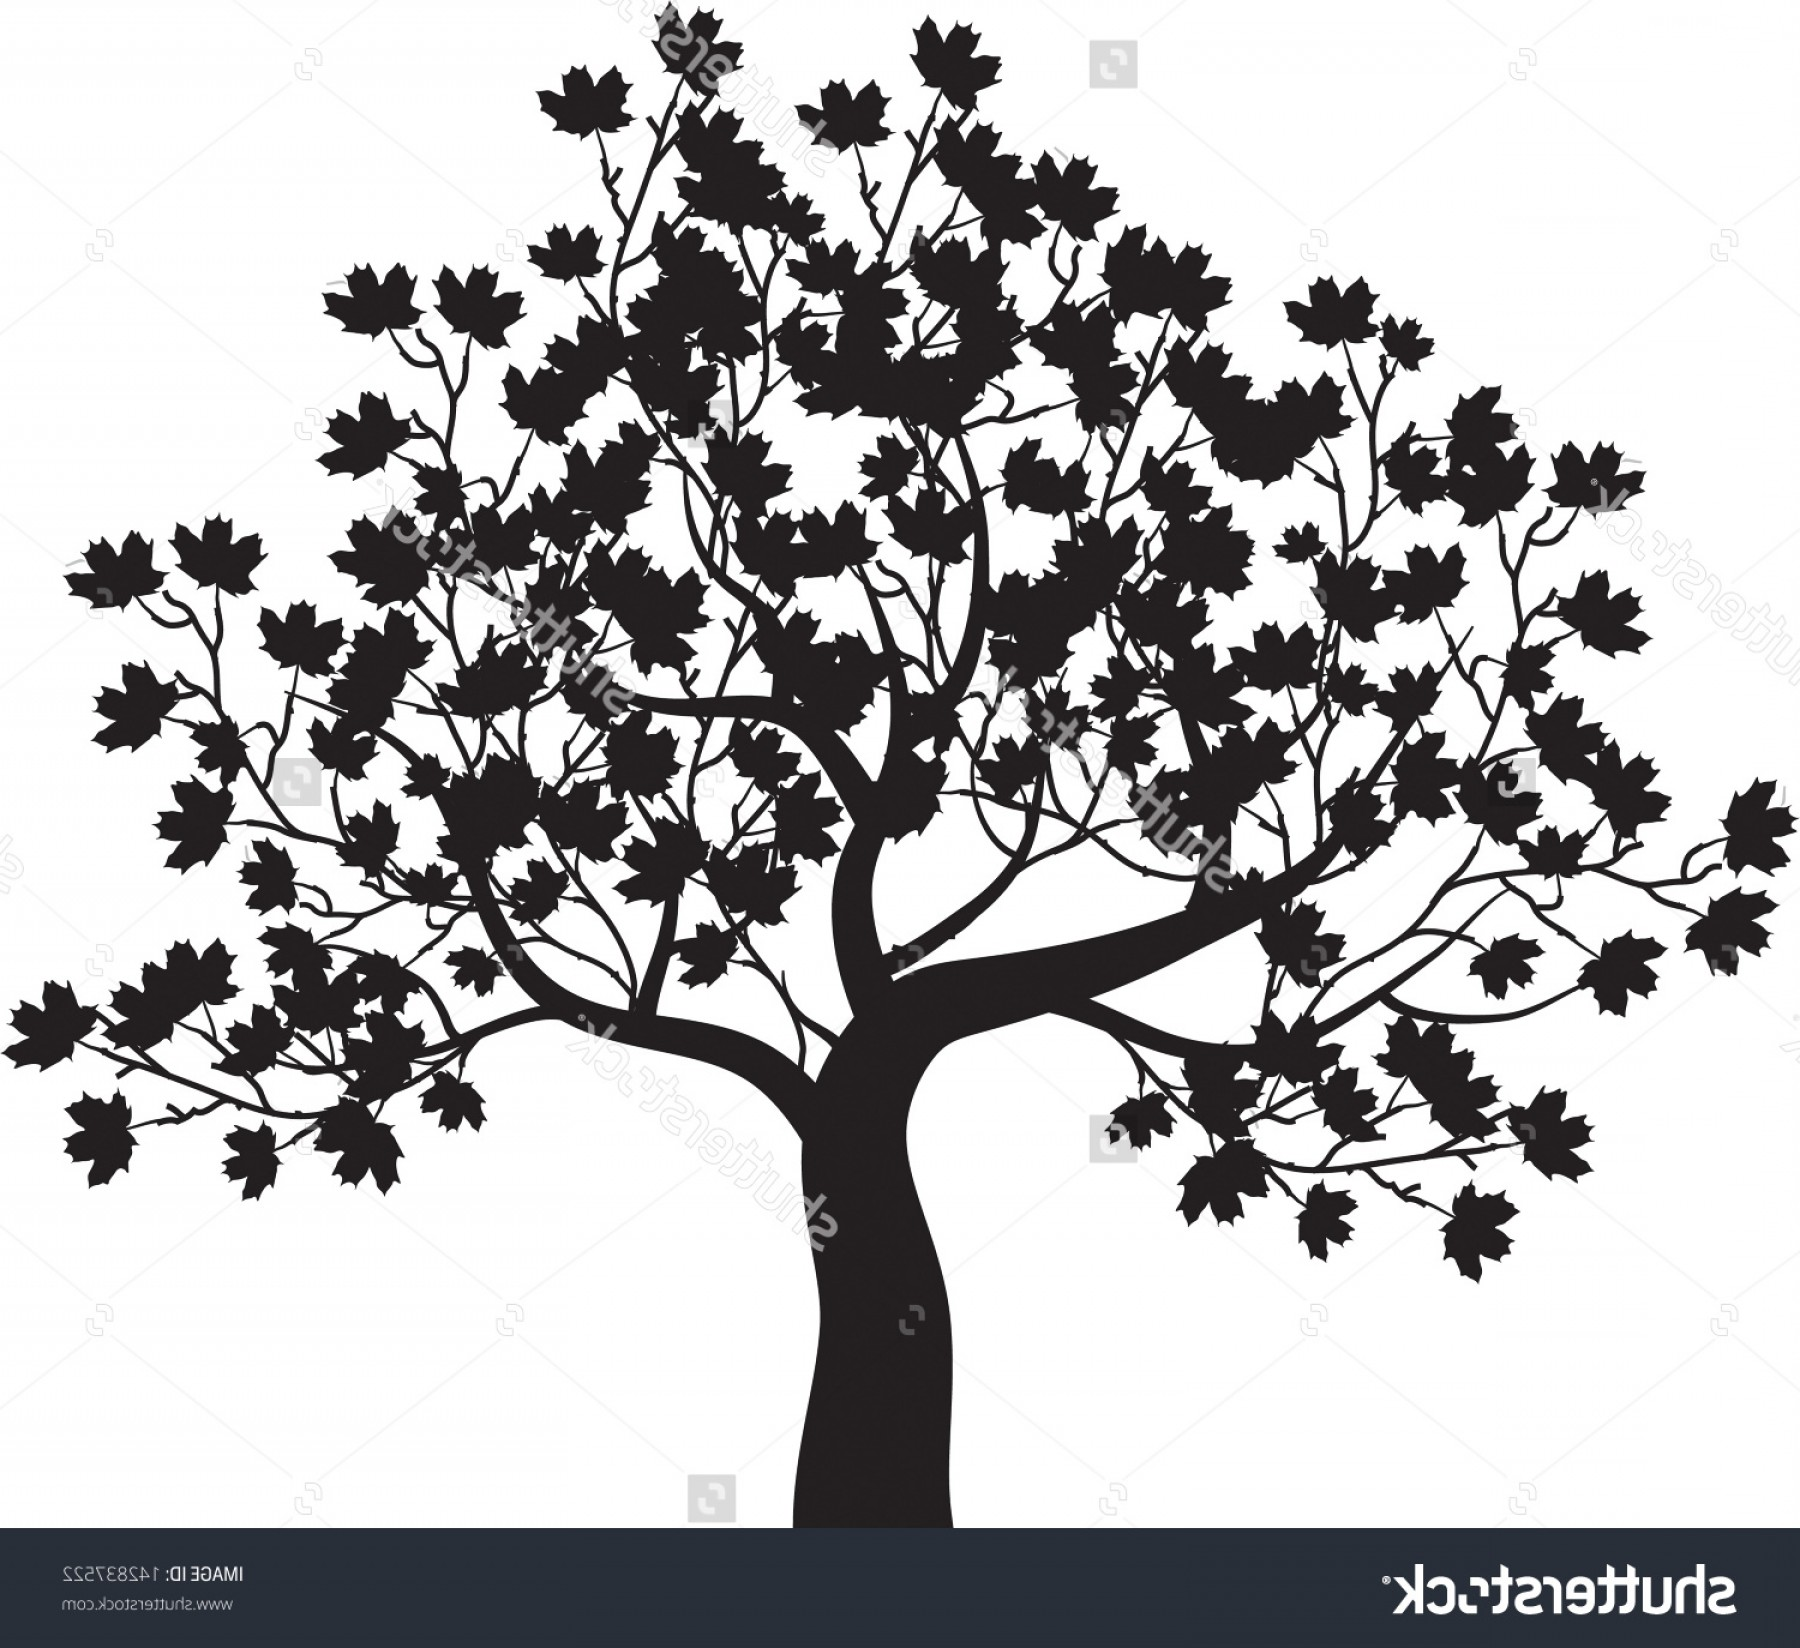 1800x1648 Maple Tree Clipart Black And White Geekchicpro